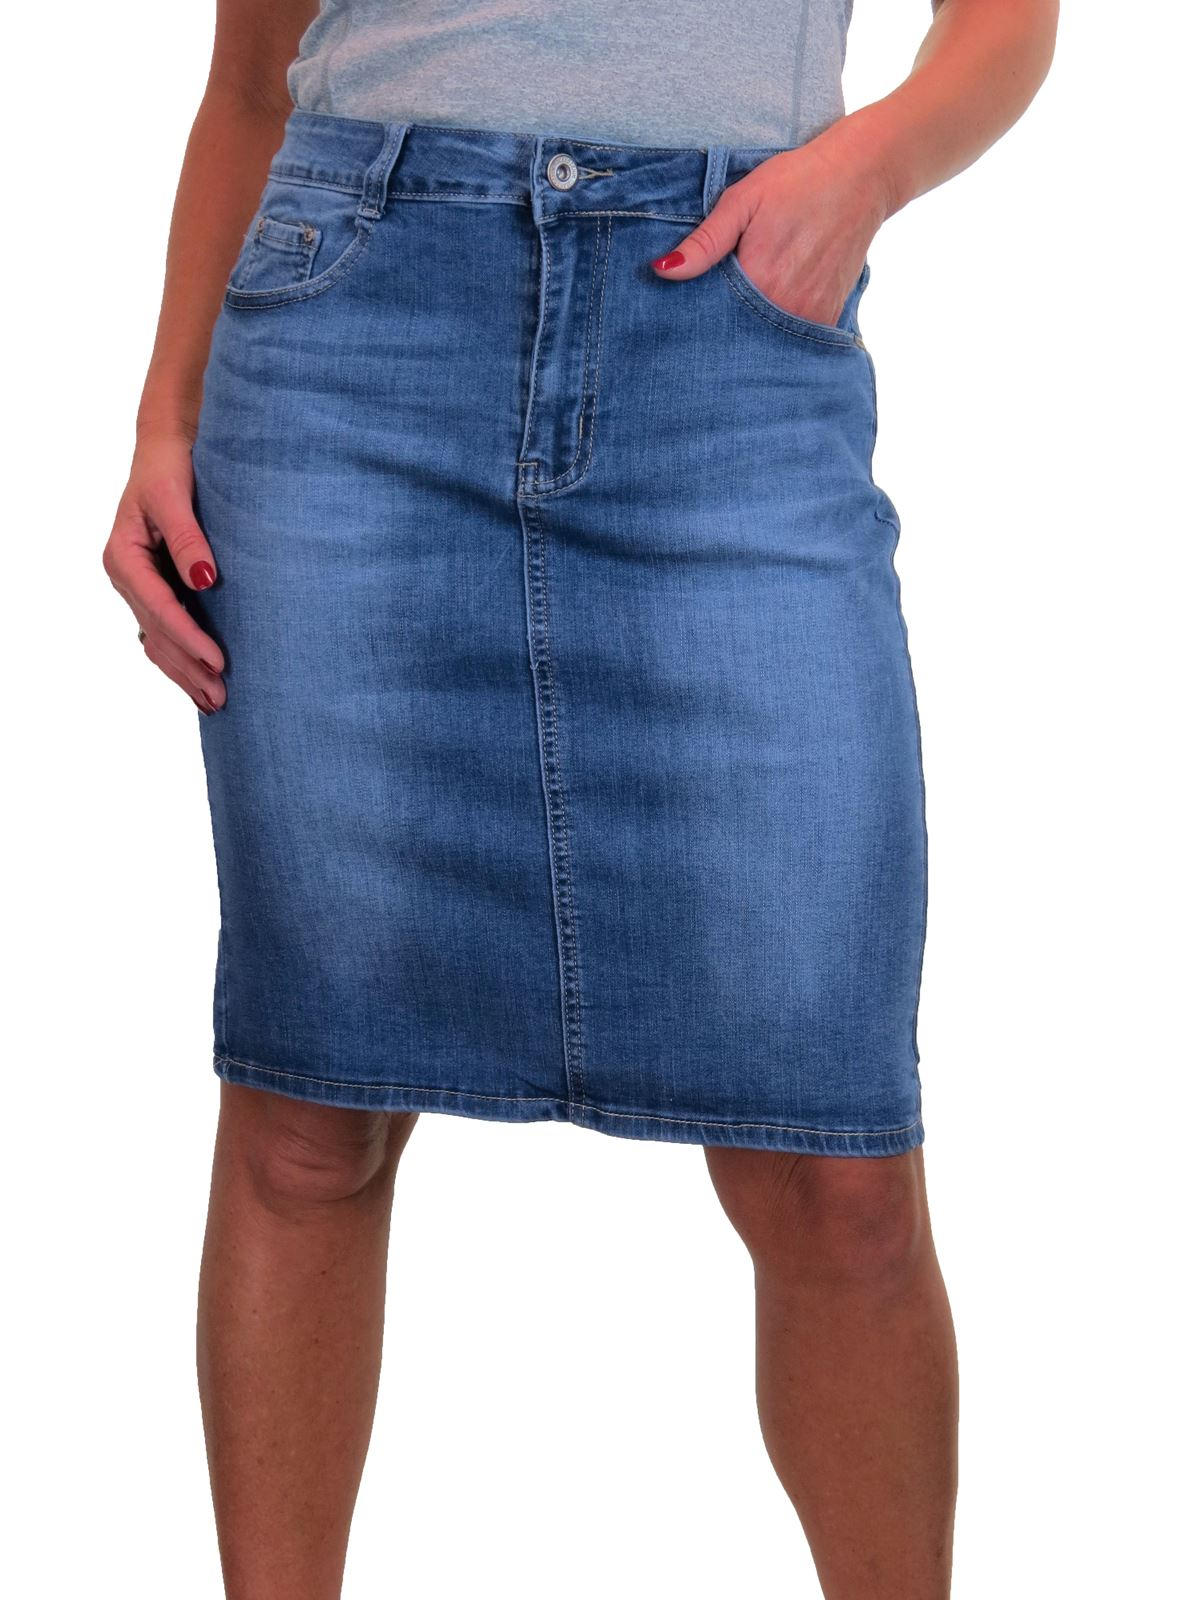 ICE-Knee-Length-Denim-Skirt-With-Great-Stretch-Jeans-Skirt-10-22 thumbnail 13